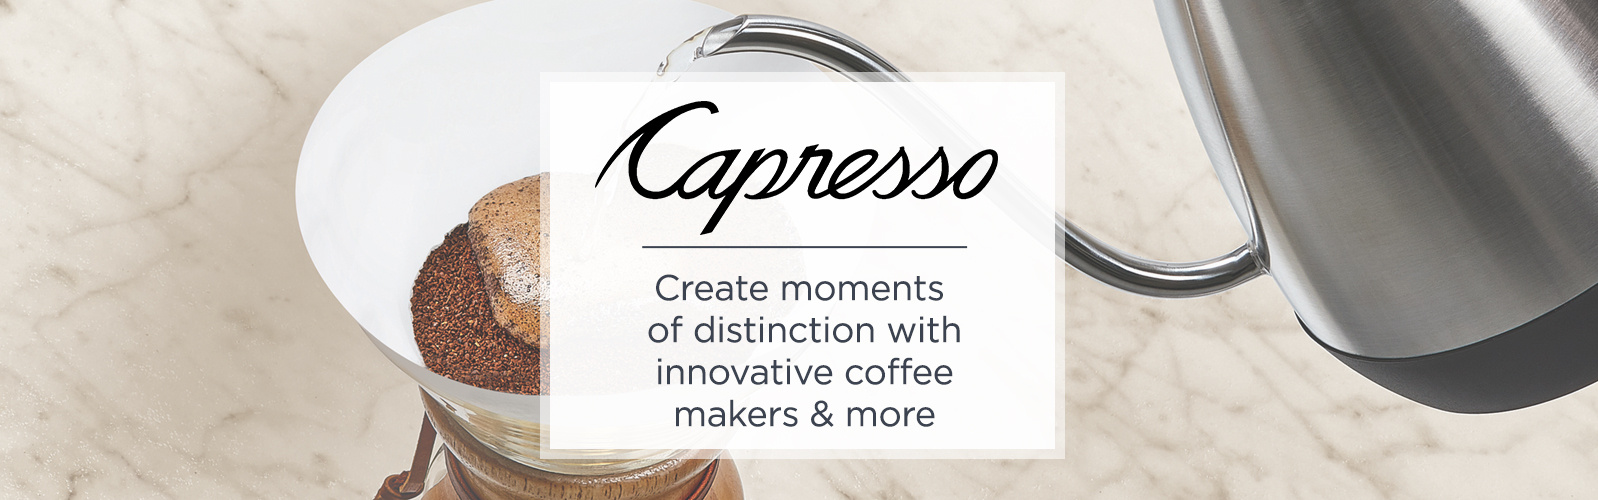 Capresso Create moments of distinction with innovative coffee makers & more